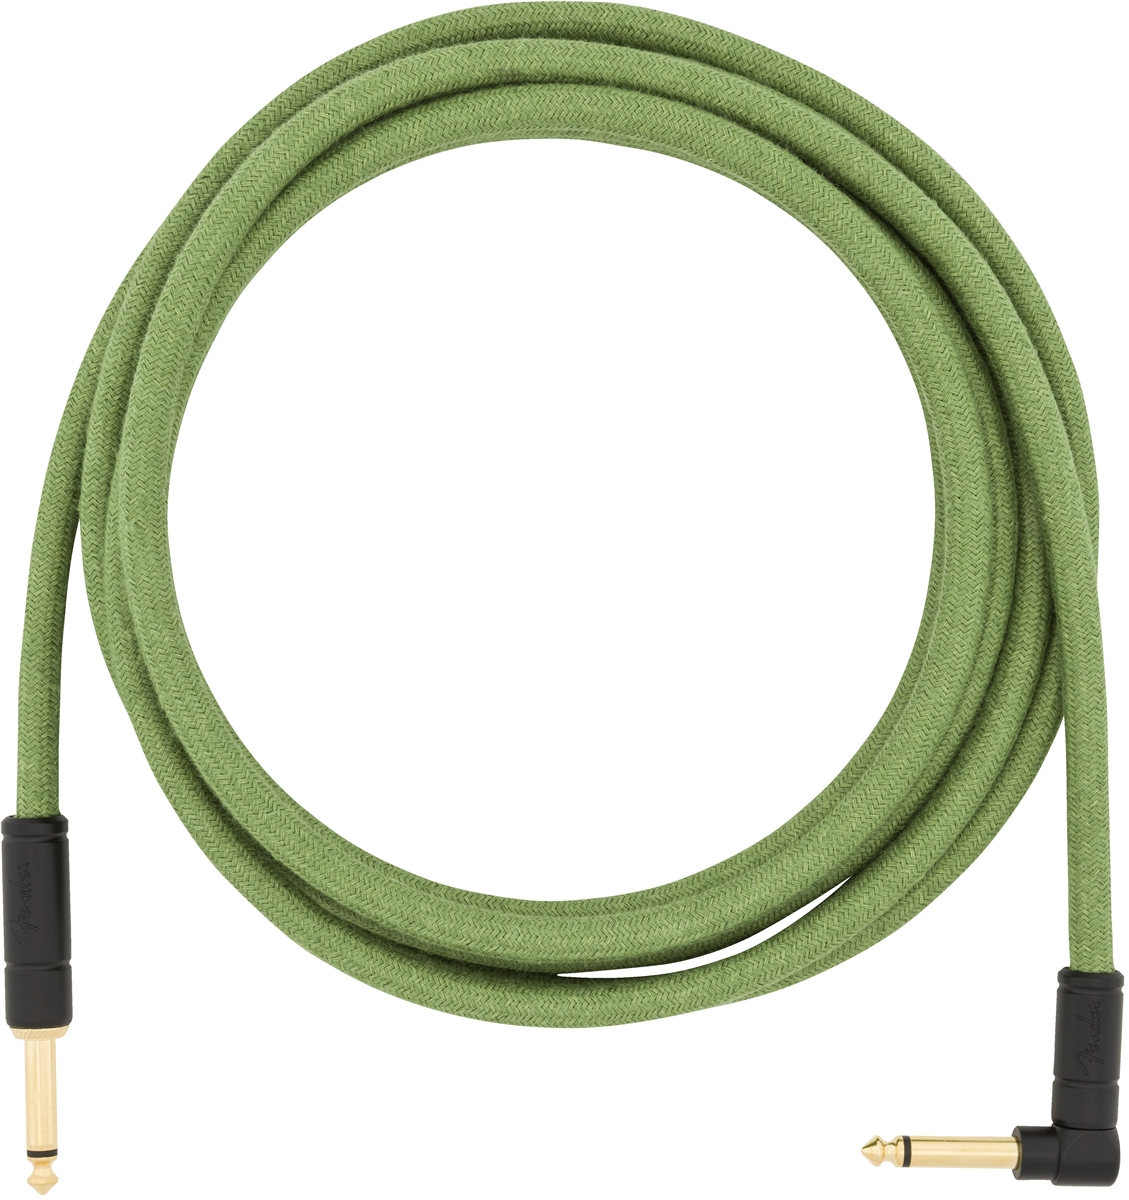 Festival Hemp Instrument Cables Green 10FT追加画像